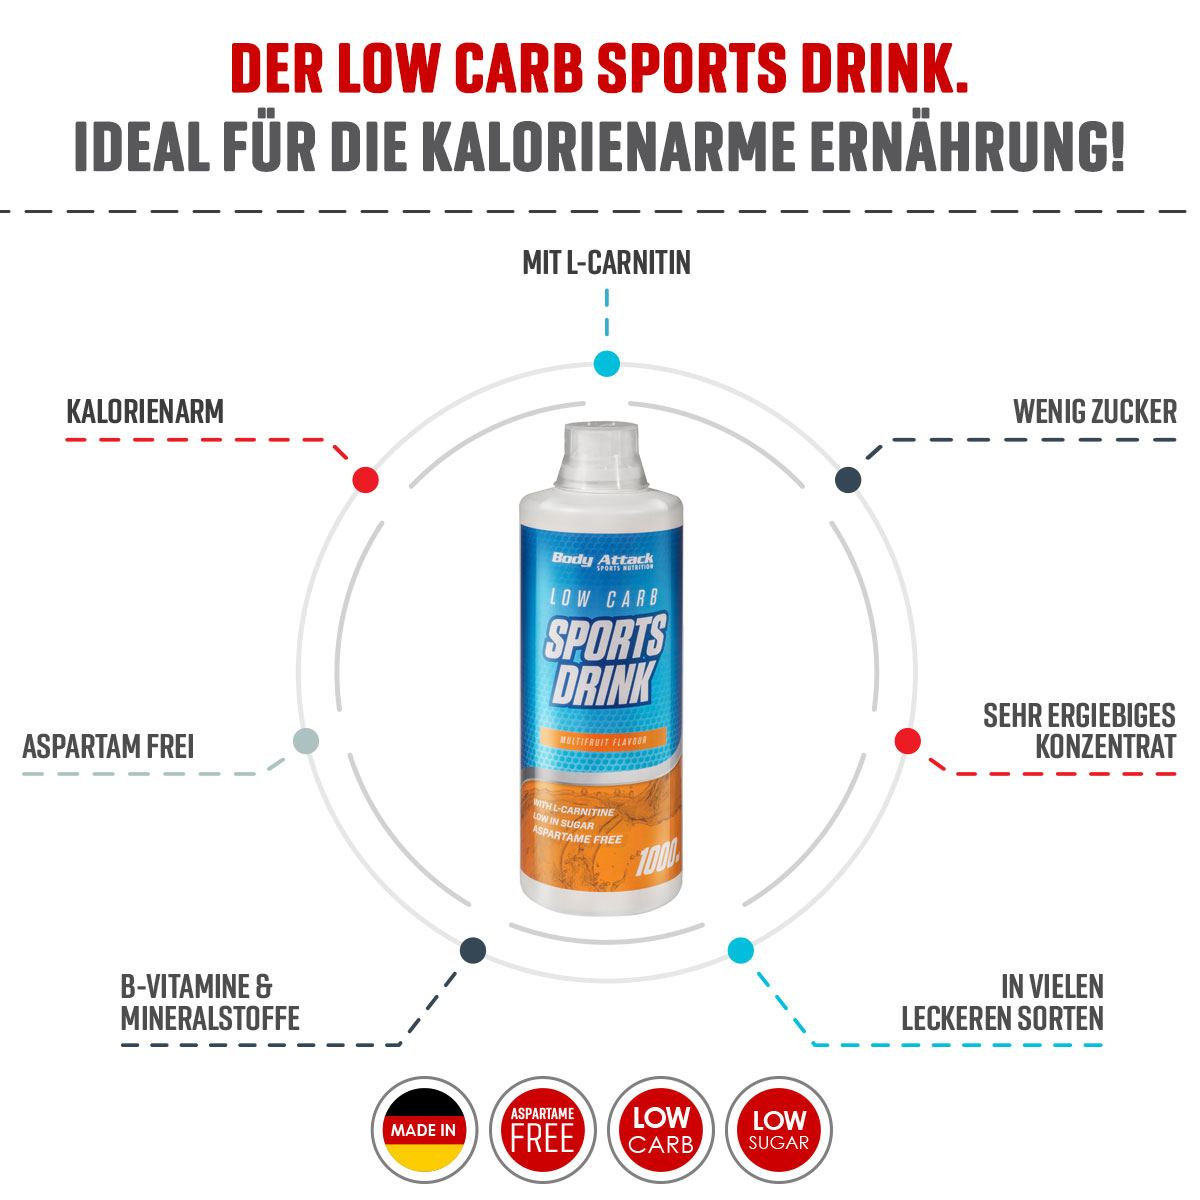 Low Carb Sports Drink Info